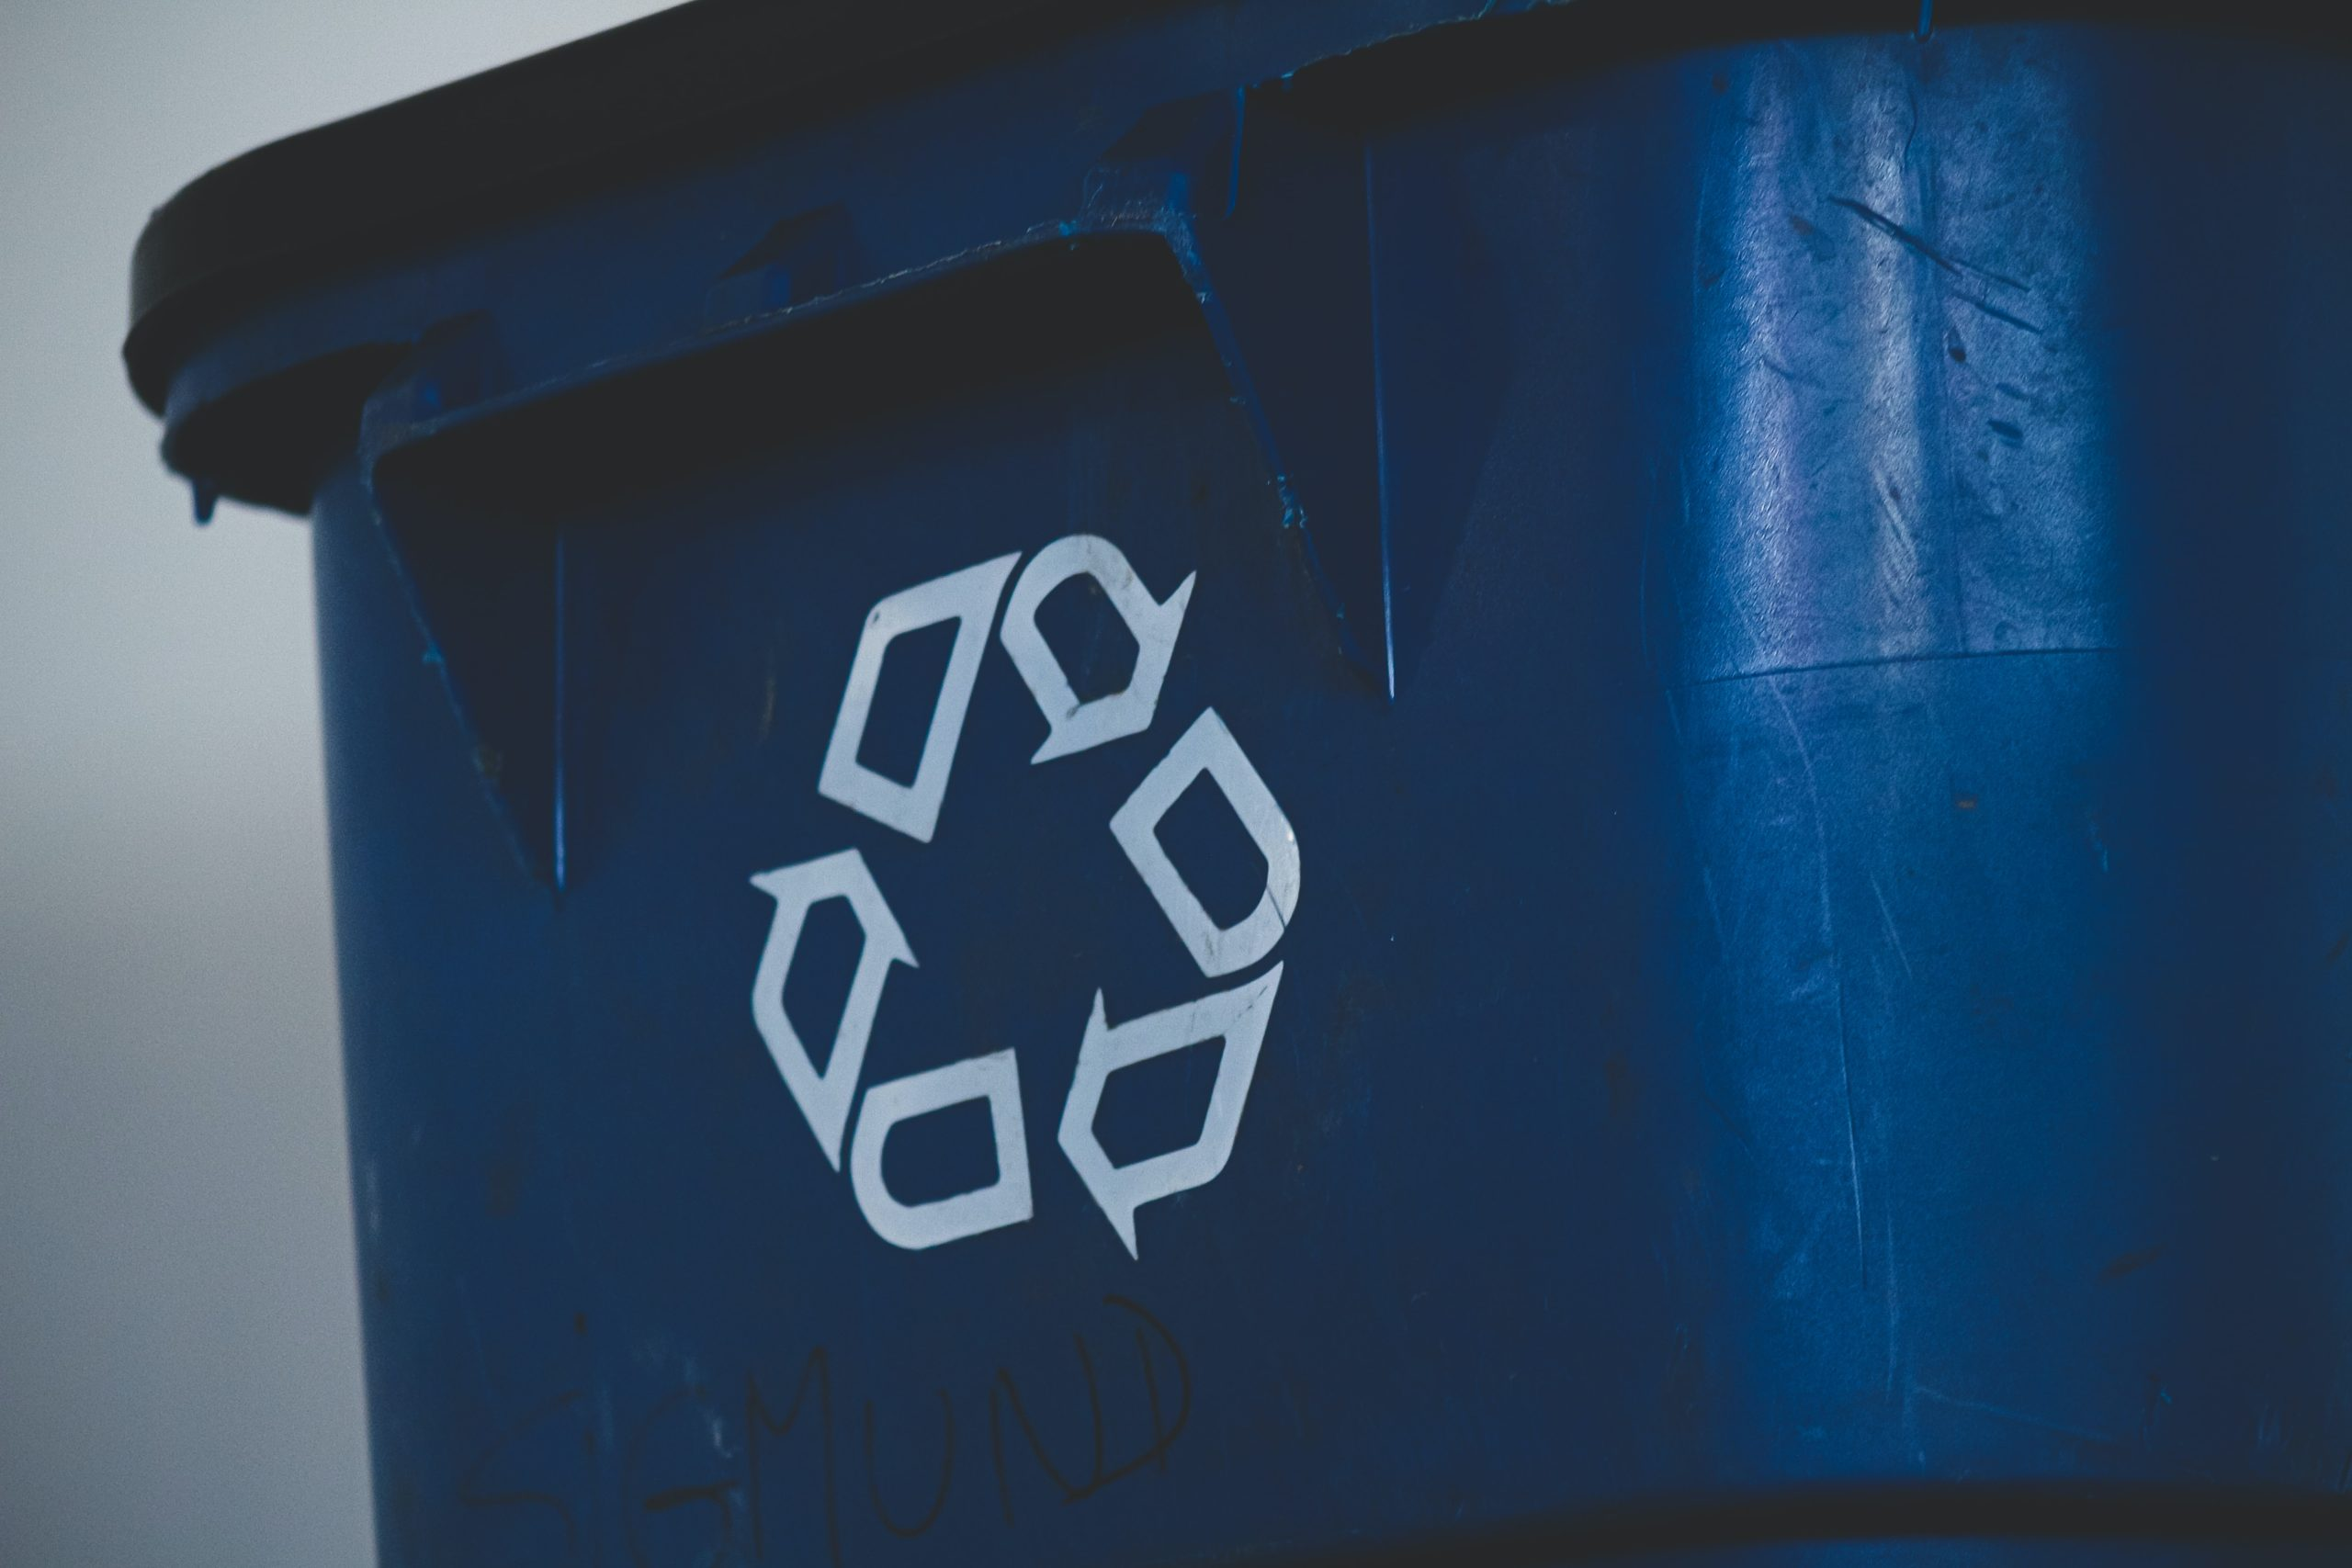 Reuse Recycle symbol on blue bin for people to be less wasteful